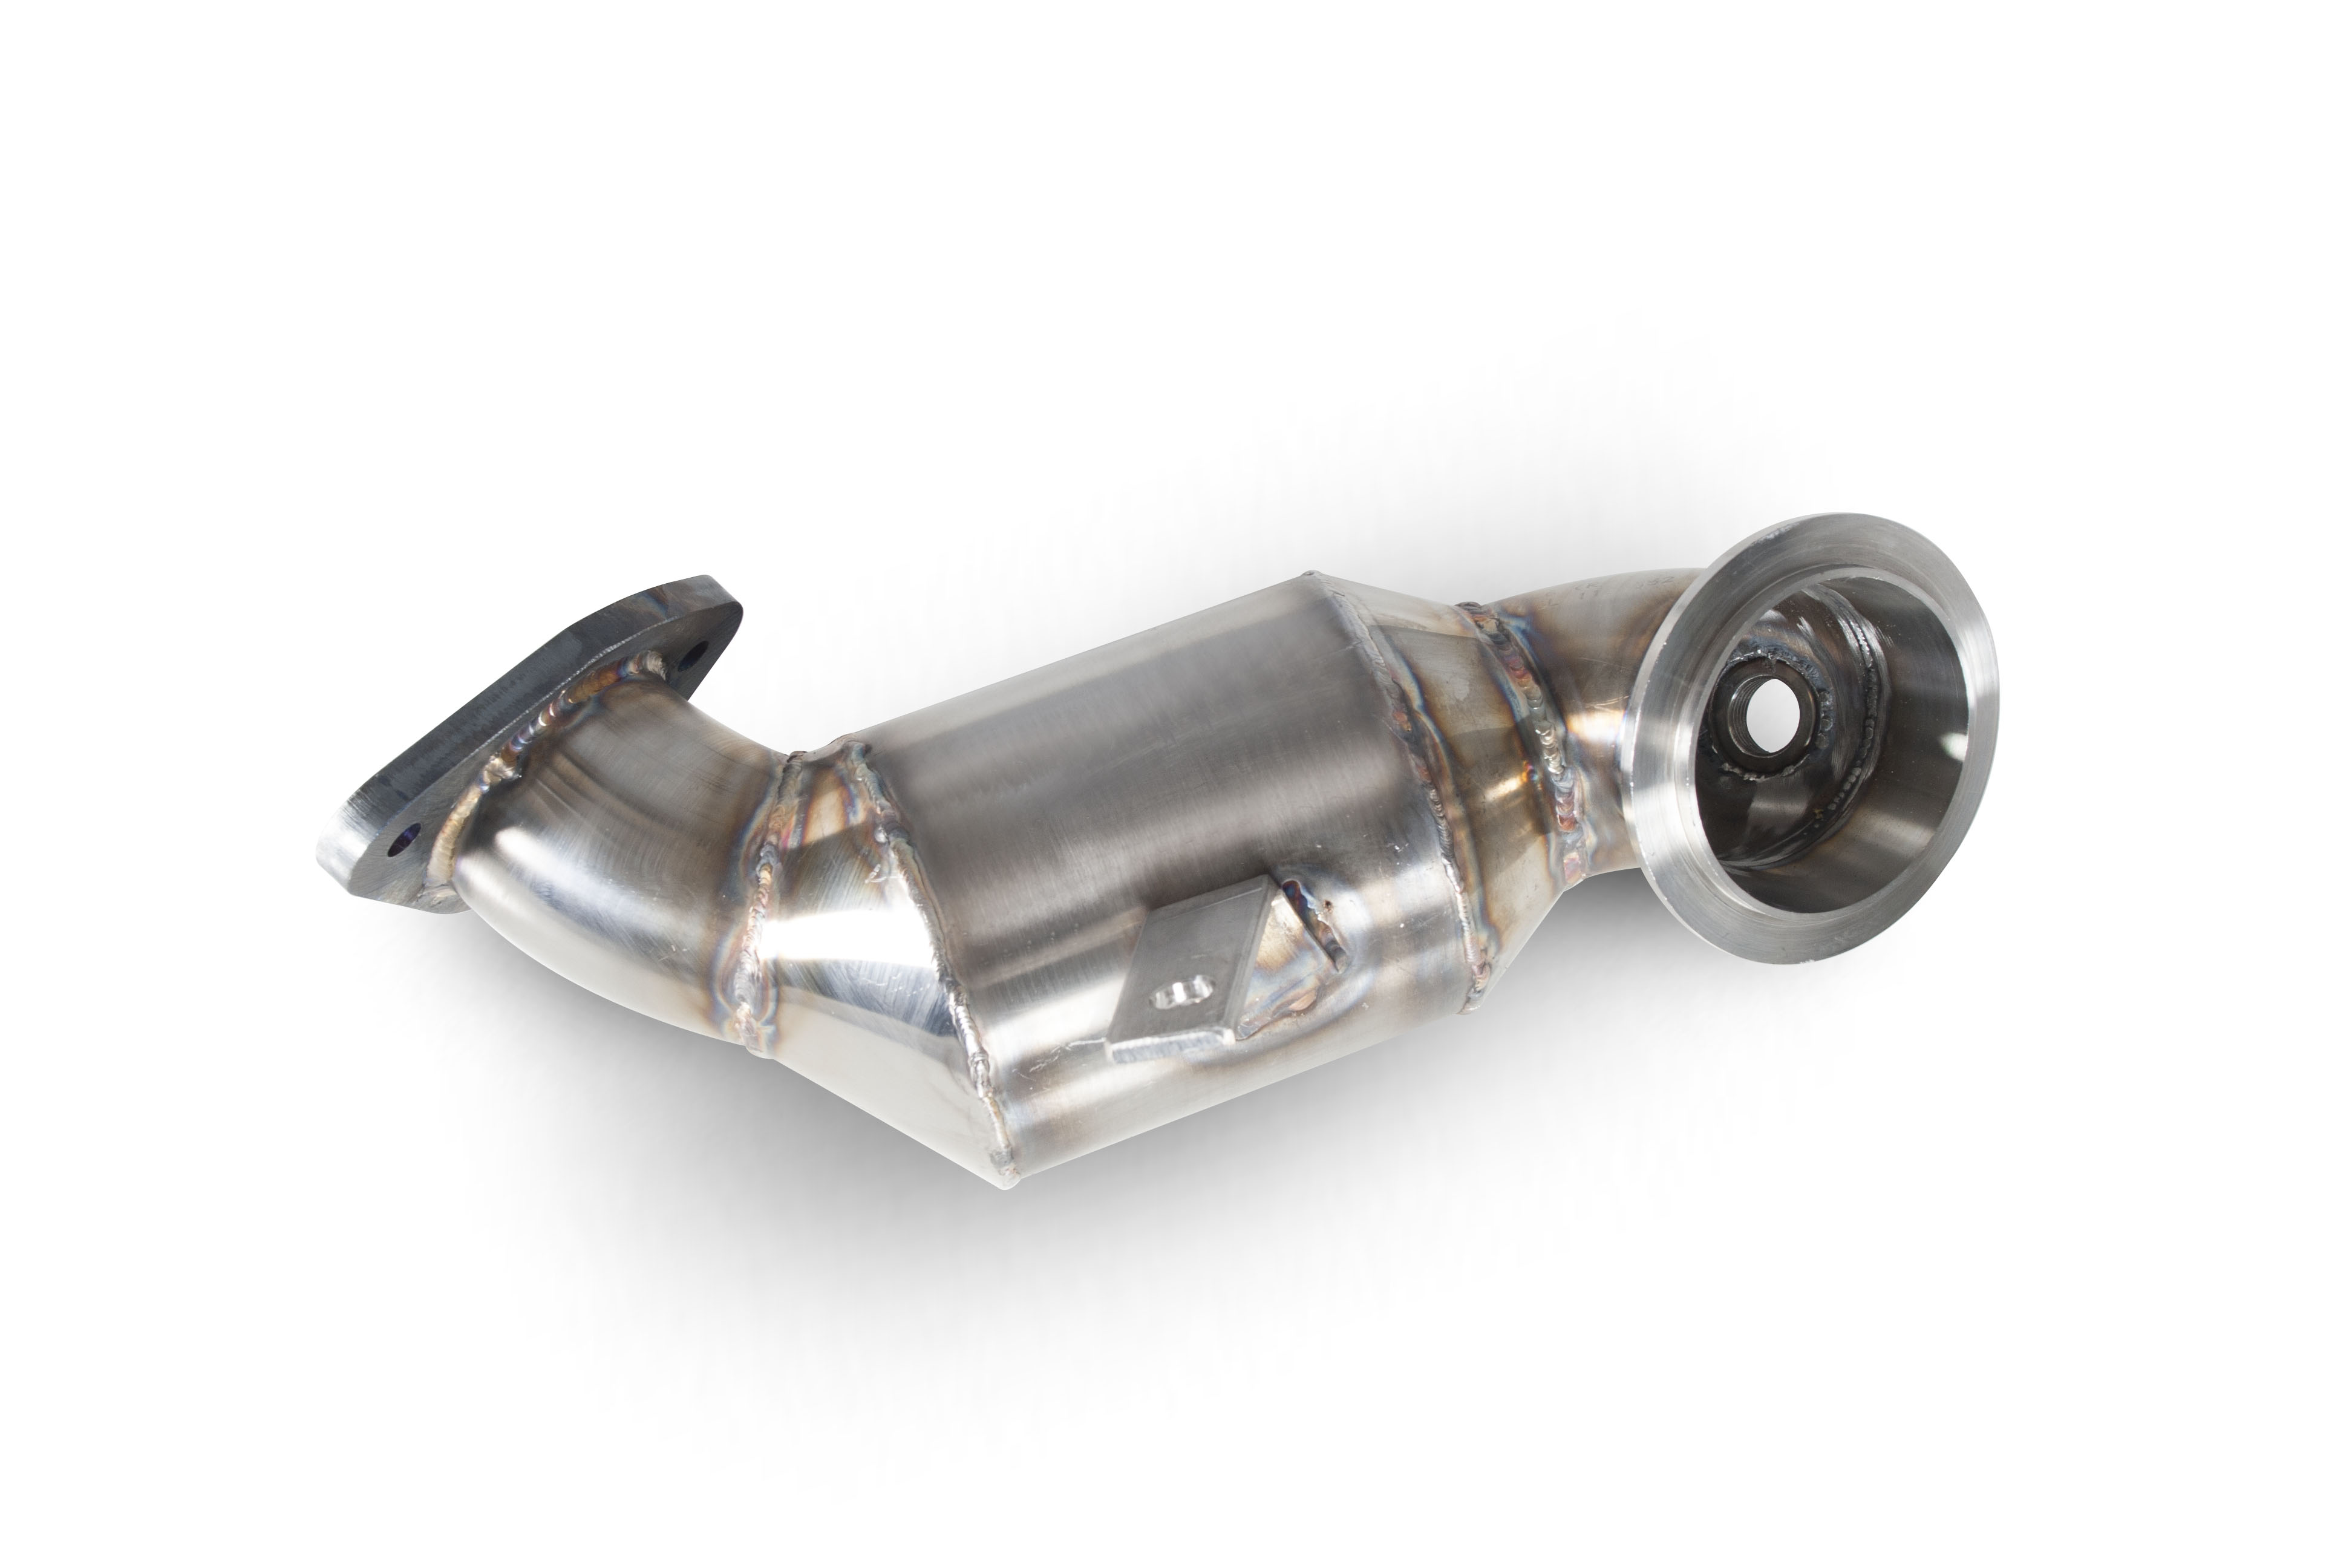 Scorpion Downpipe with a high flow sports catalyst  Vauxhall Corsa D 1.4 Turbo Black Edition/Astra GTC 1.4 Turbo SVXX058